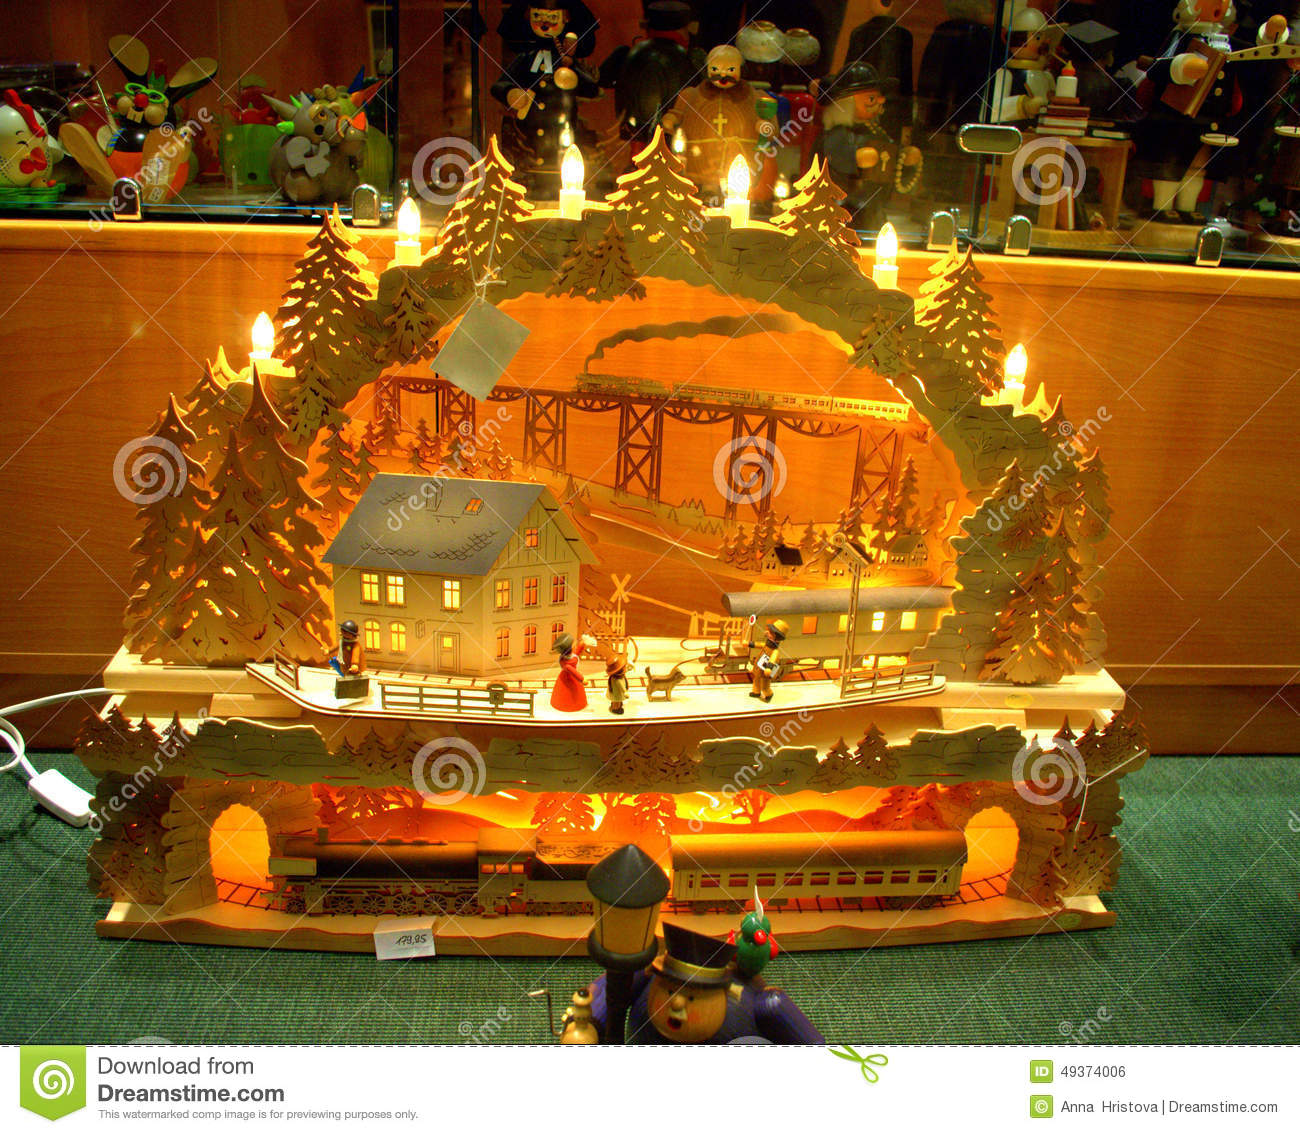 traditional lighted handmade german christmas decoration candle wooden arch train ride in the mountainin souvenir shopdresdengermany - German Handmade Wooden Christmas Decorations